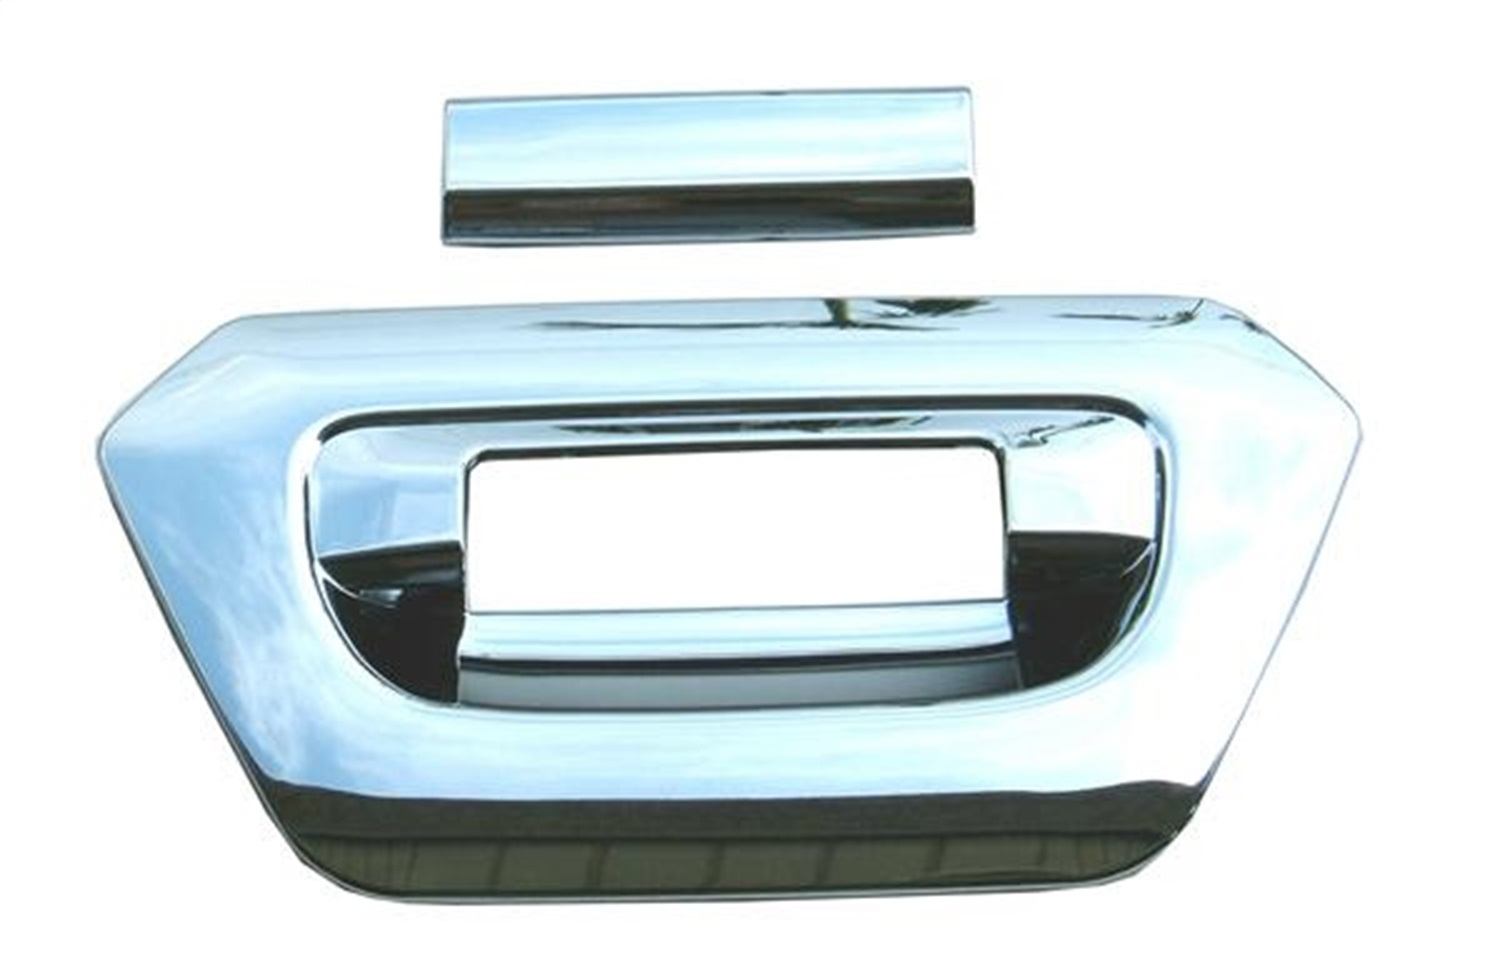 canada 2007 toyota tacoma tailgate handle. Black Bedroom Furniture Sets. Home Design Ideas